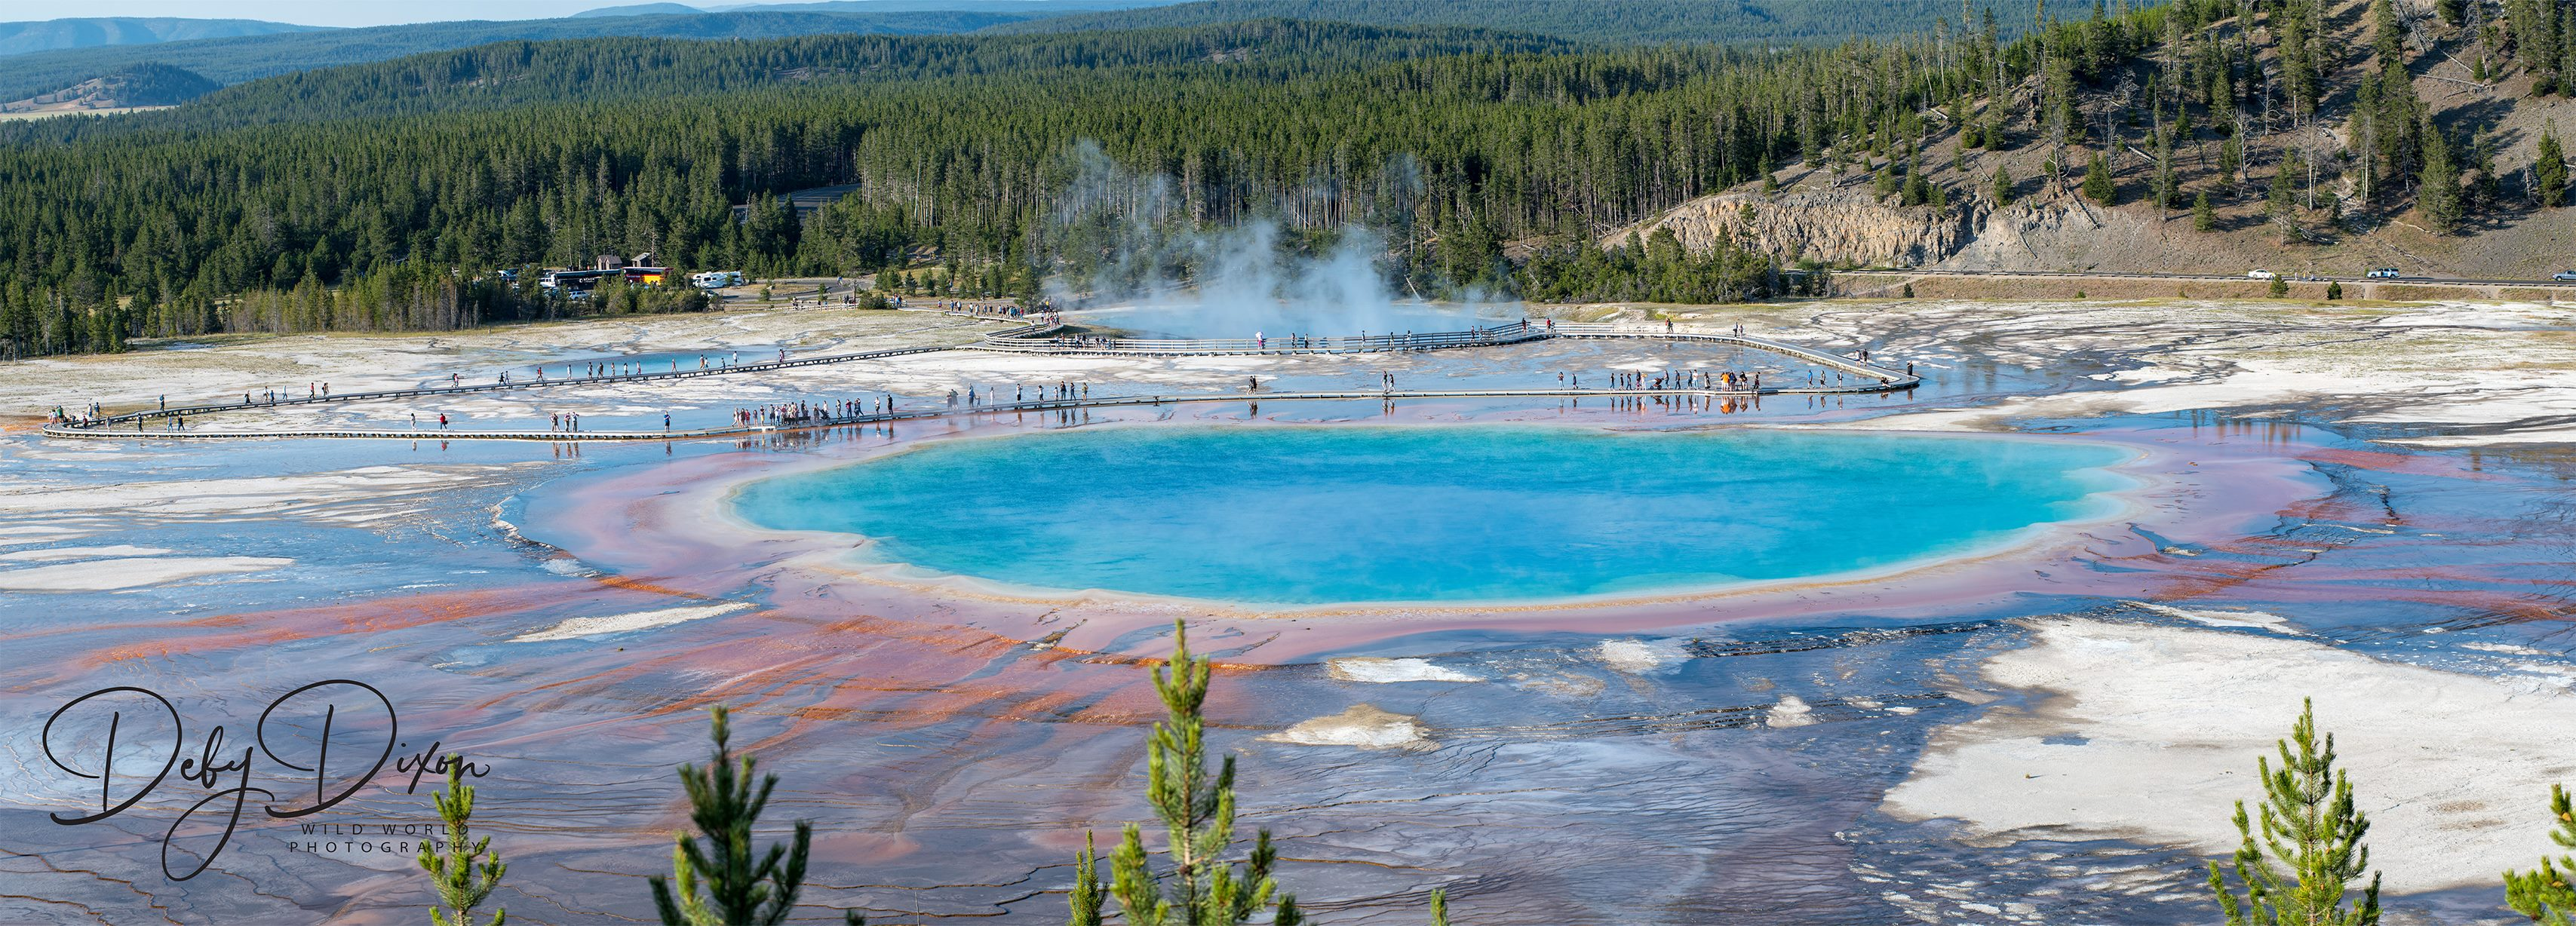 yellowstone NP.jpg